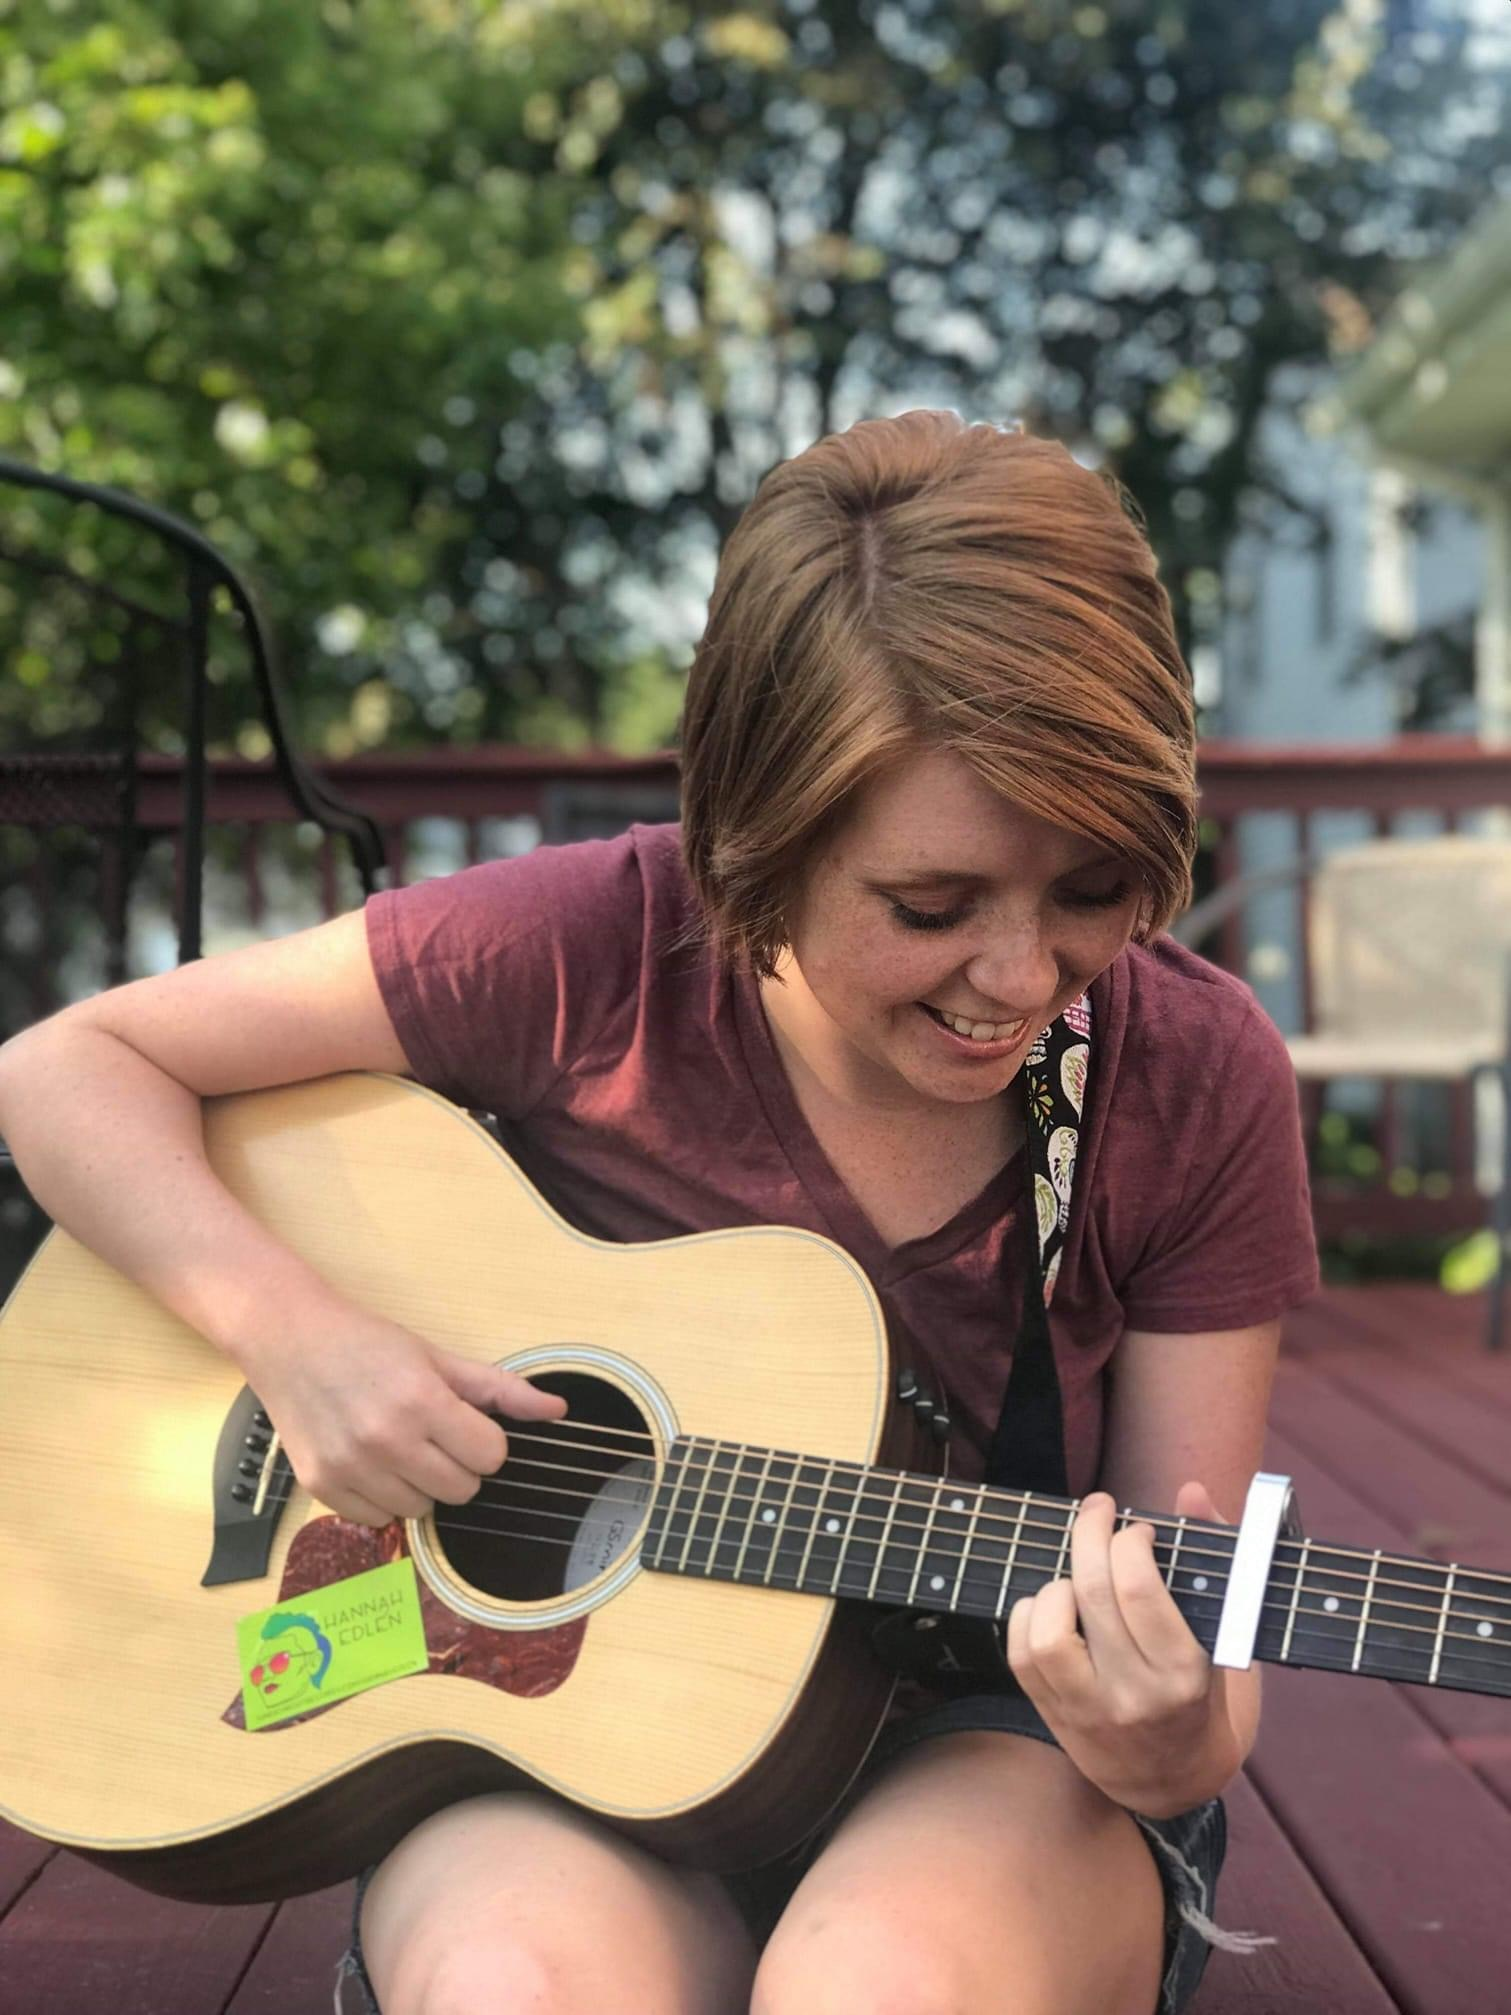 Ep. 142: Chloe Louise on music and sobriety